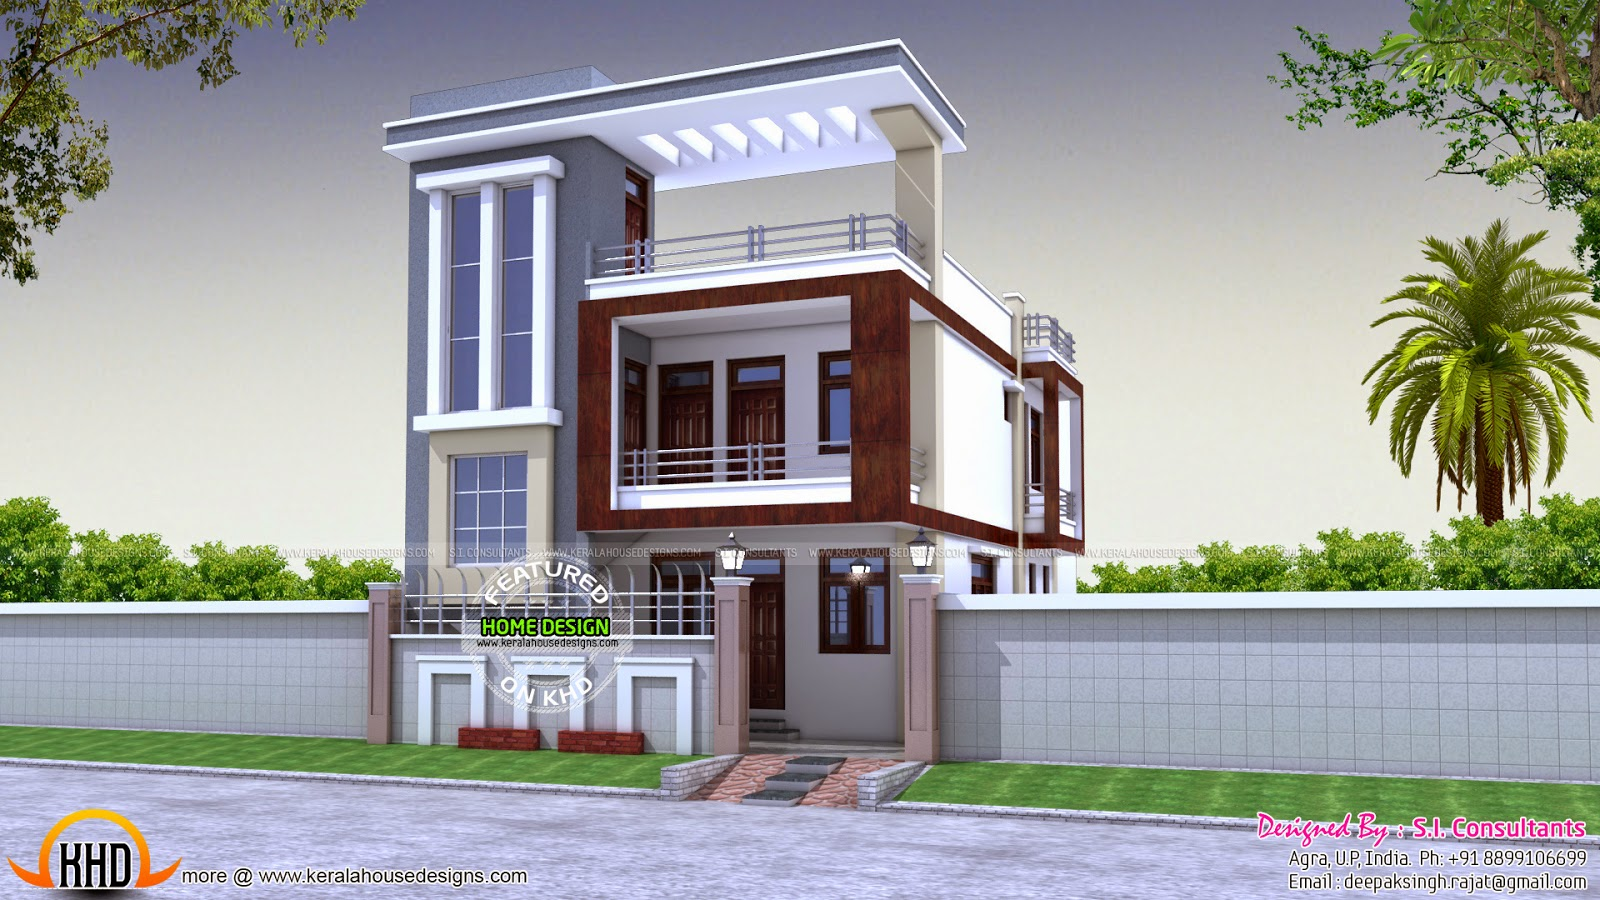 30x50 home plan kerala home design and floor plans for Www homedesign com